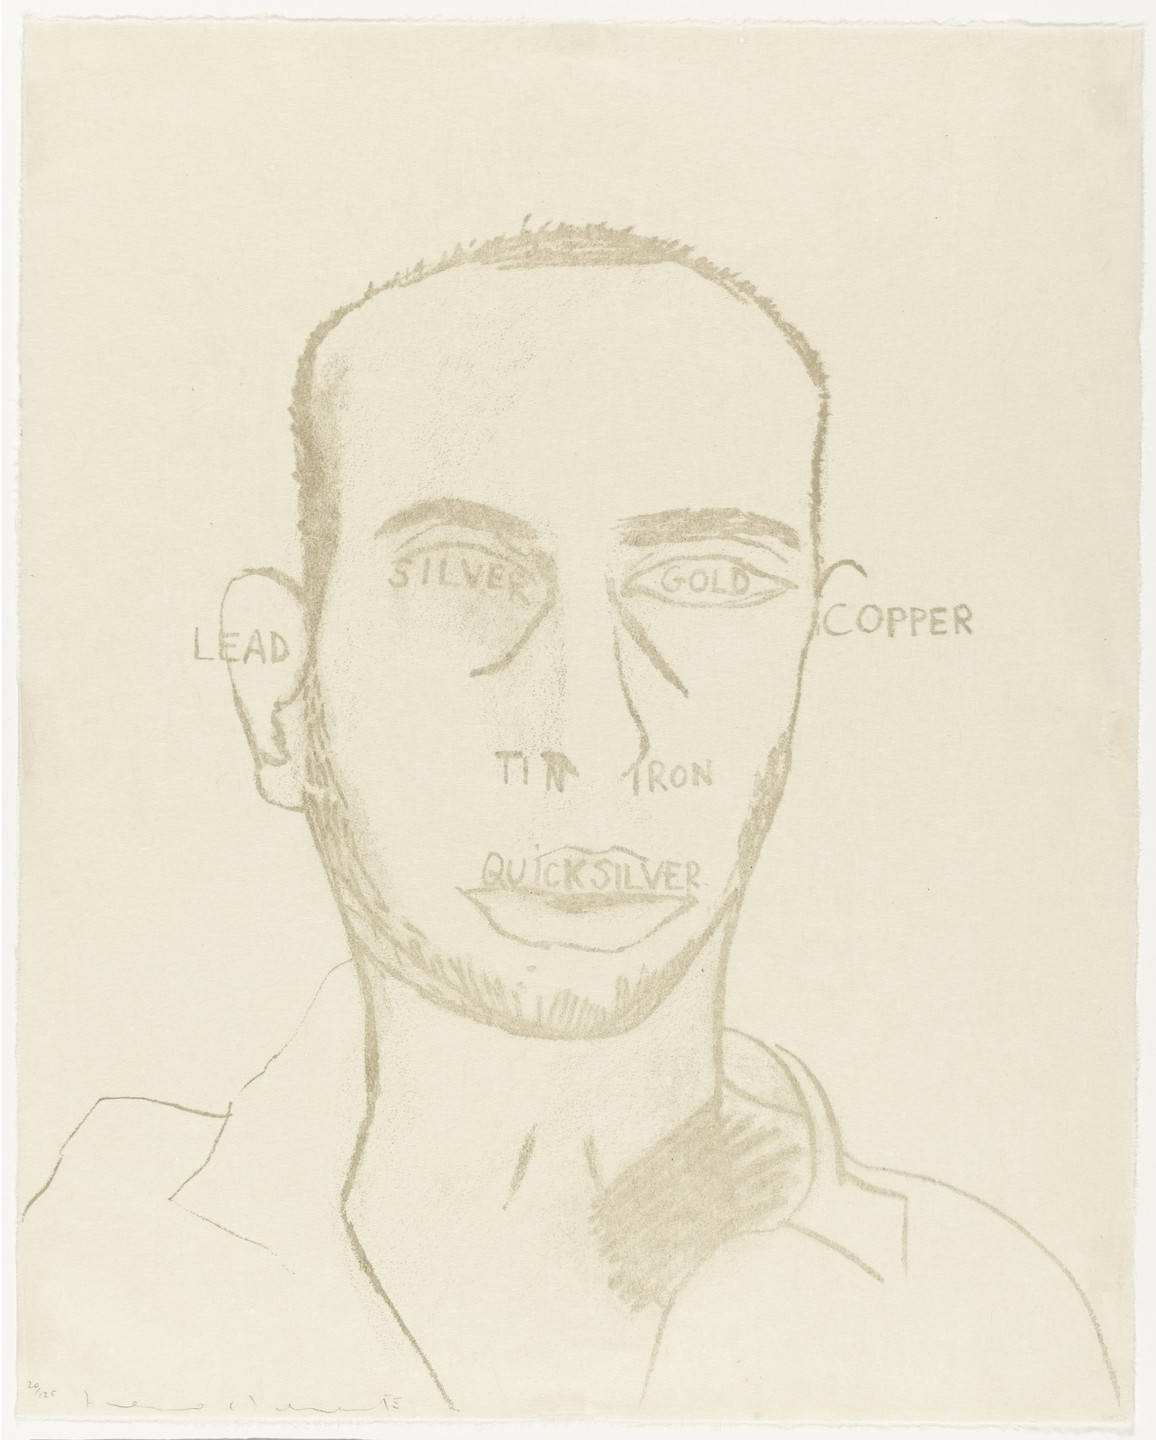 Francesco Clemente. Traditional Self Portrait from the portfolio Art Pro Choice II. 1991